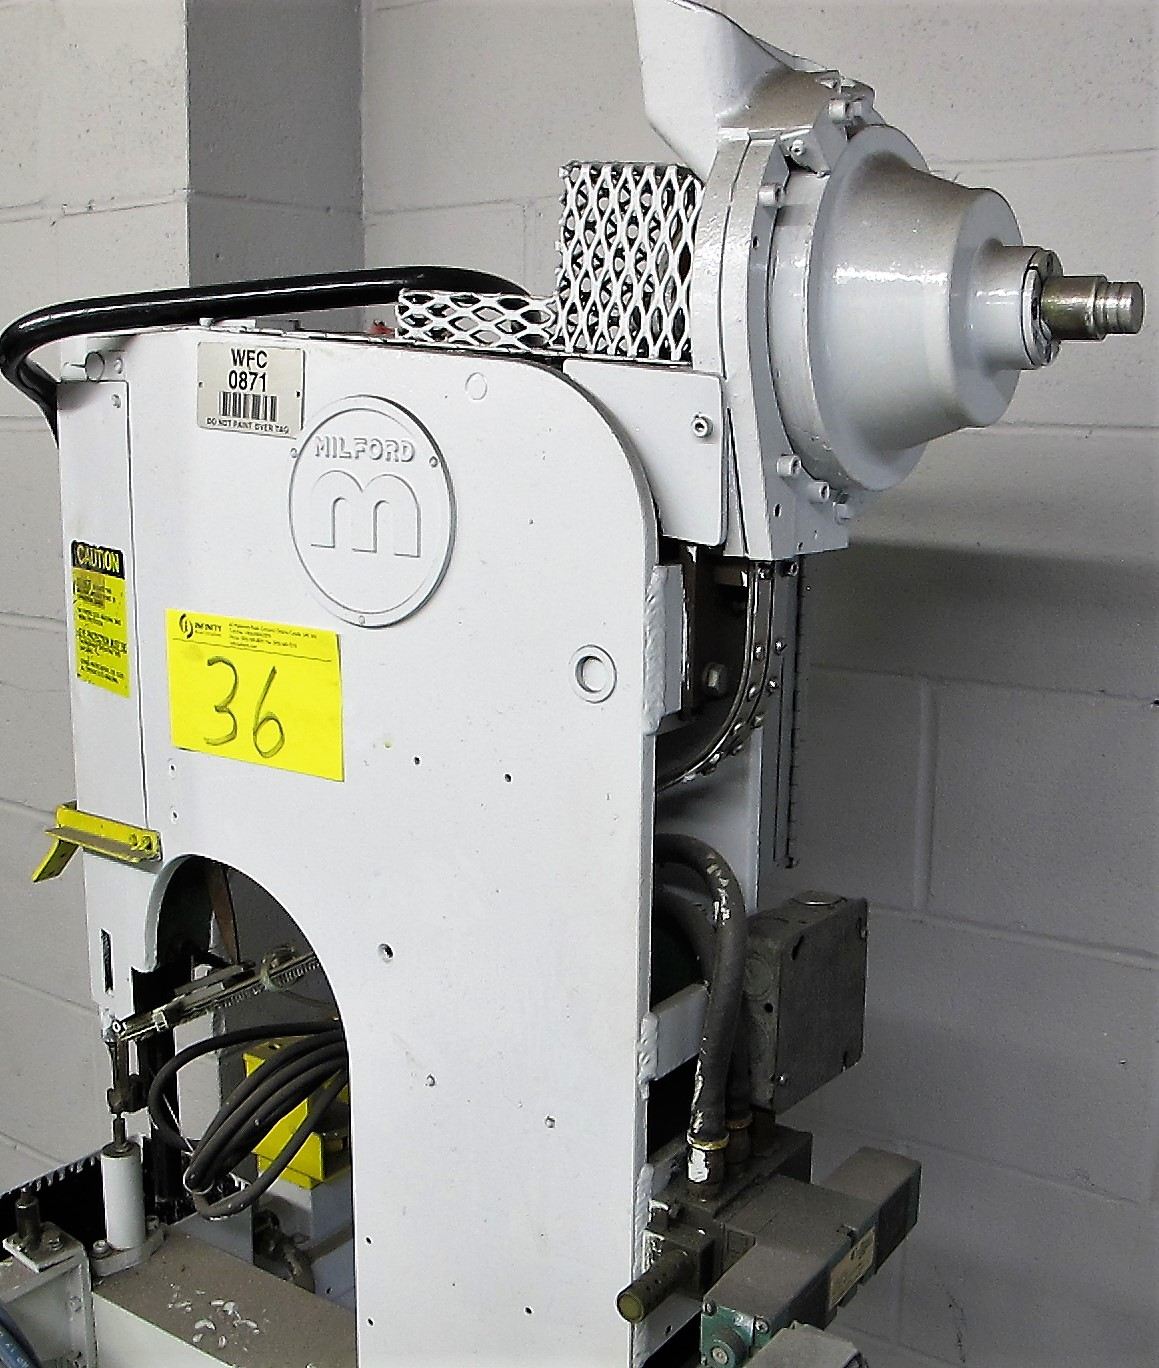 MILFORD MODEL 57, PNEUMATIC INSERTION PRESS, S/N 3166 - Image 2 of 4